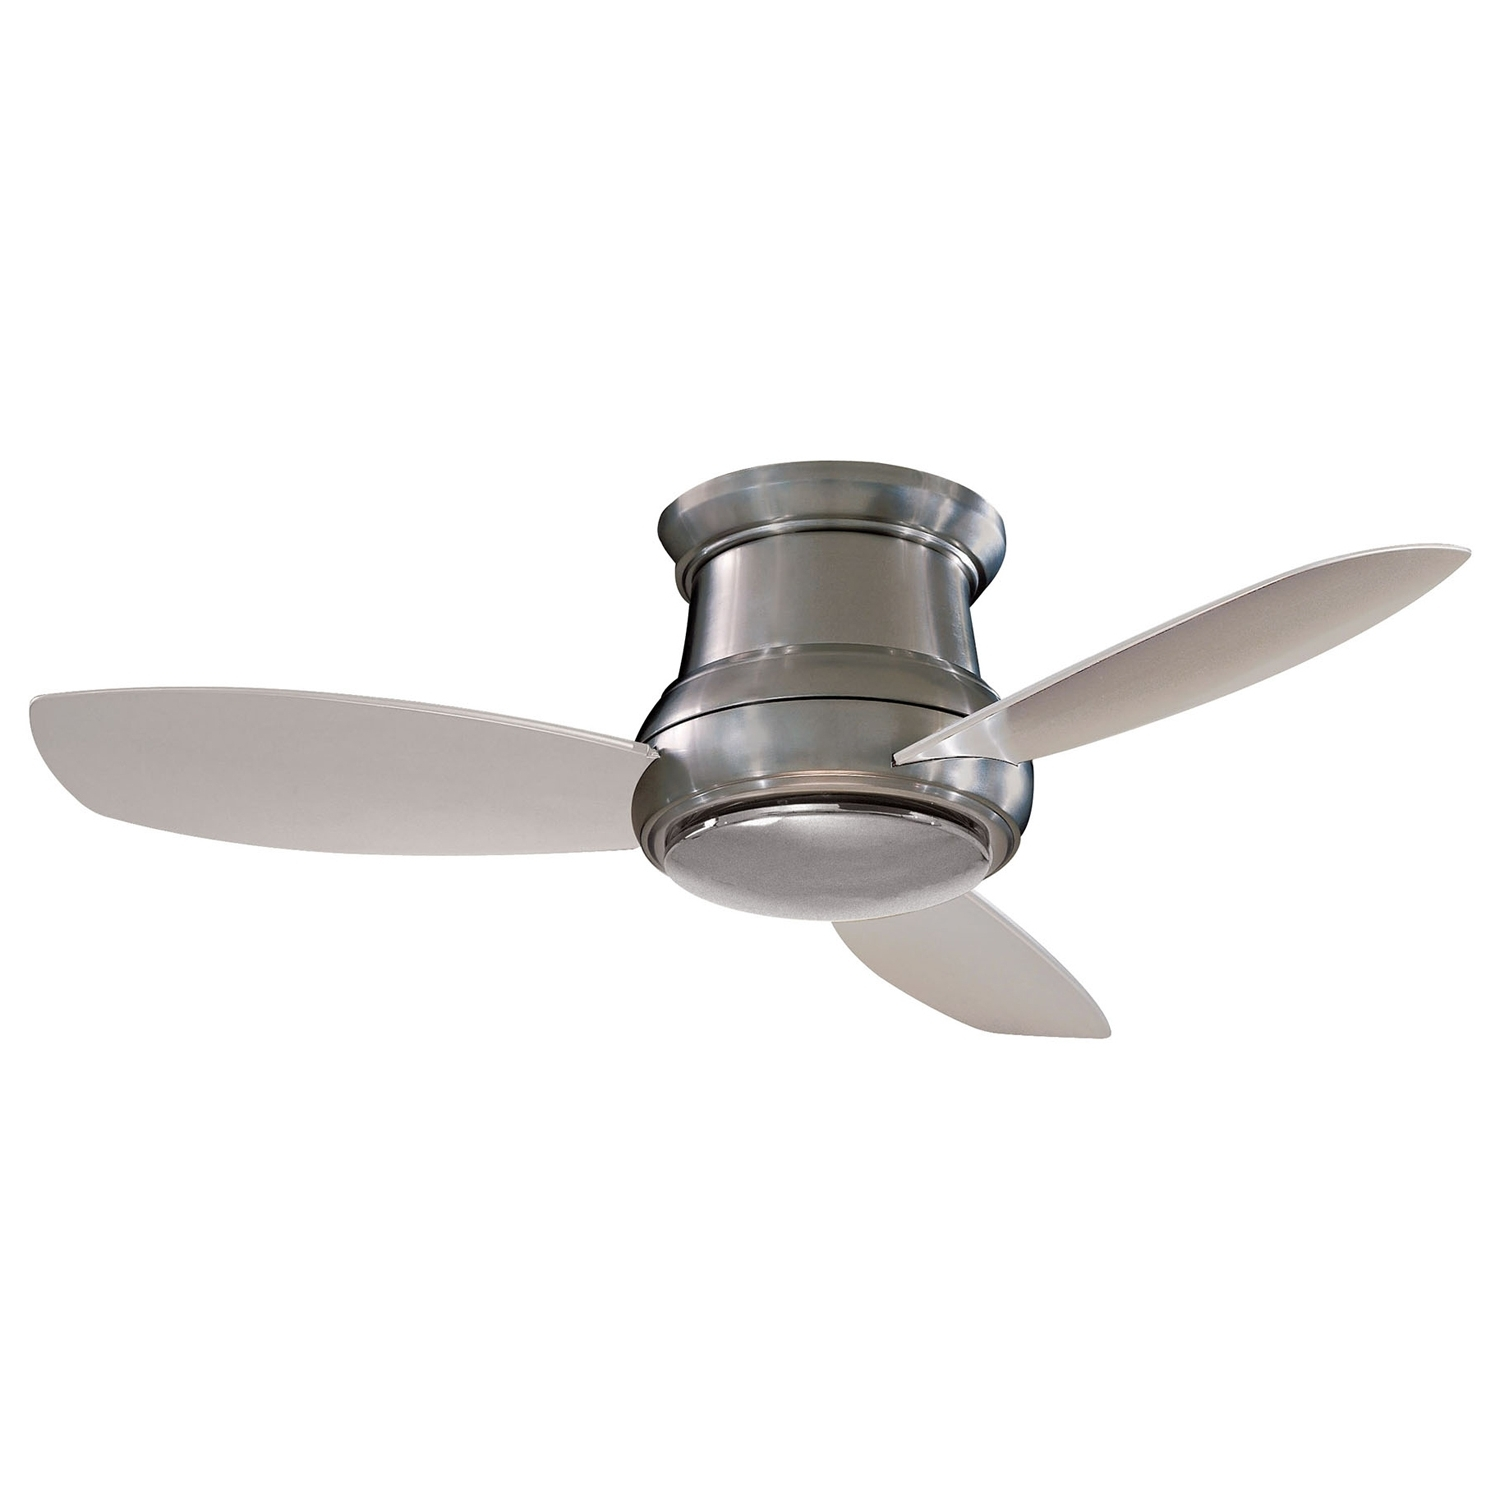 Outdoor Ceiling Fans With Led Globe Pertaining To 2019 Minka Aire Concept Ii Brushed Nickel 44 Inch Flush Led Ceiling Fan (Gallery 15 of 20)